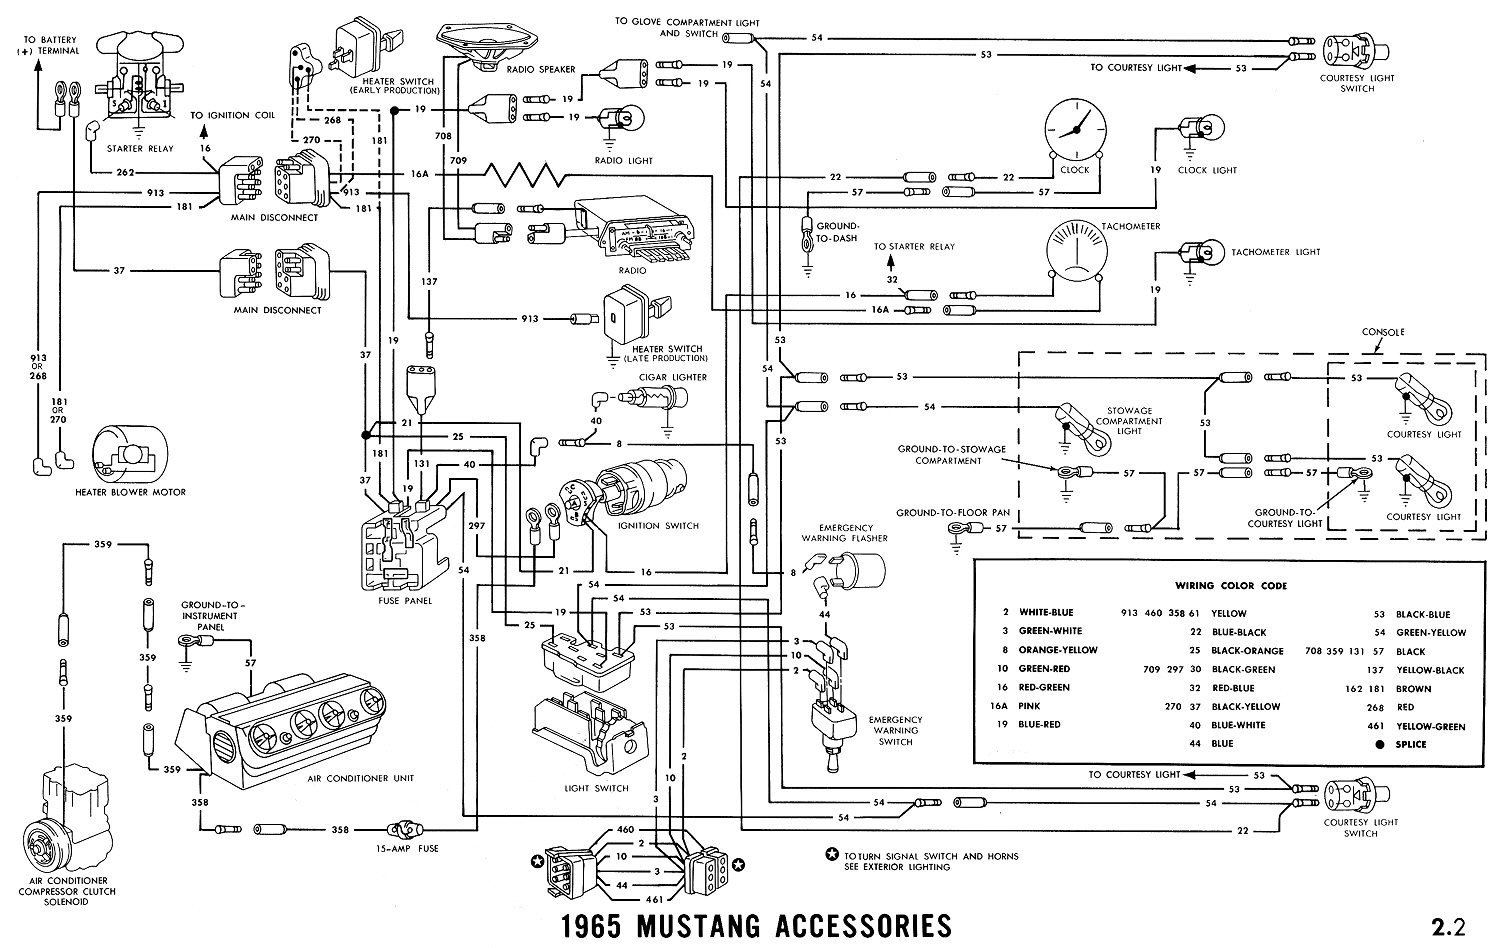 [DIAGRAM_38IU]  B200 6 3 Electrical Wire 66 Ford Mustang Wiring Diagram Air | Wiring Library | 1966 Ford Radio Wiring Diagram |  | Wiring Library